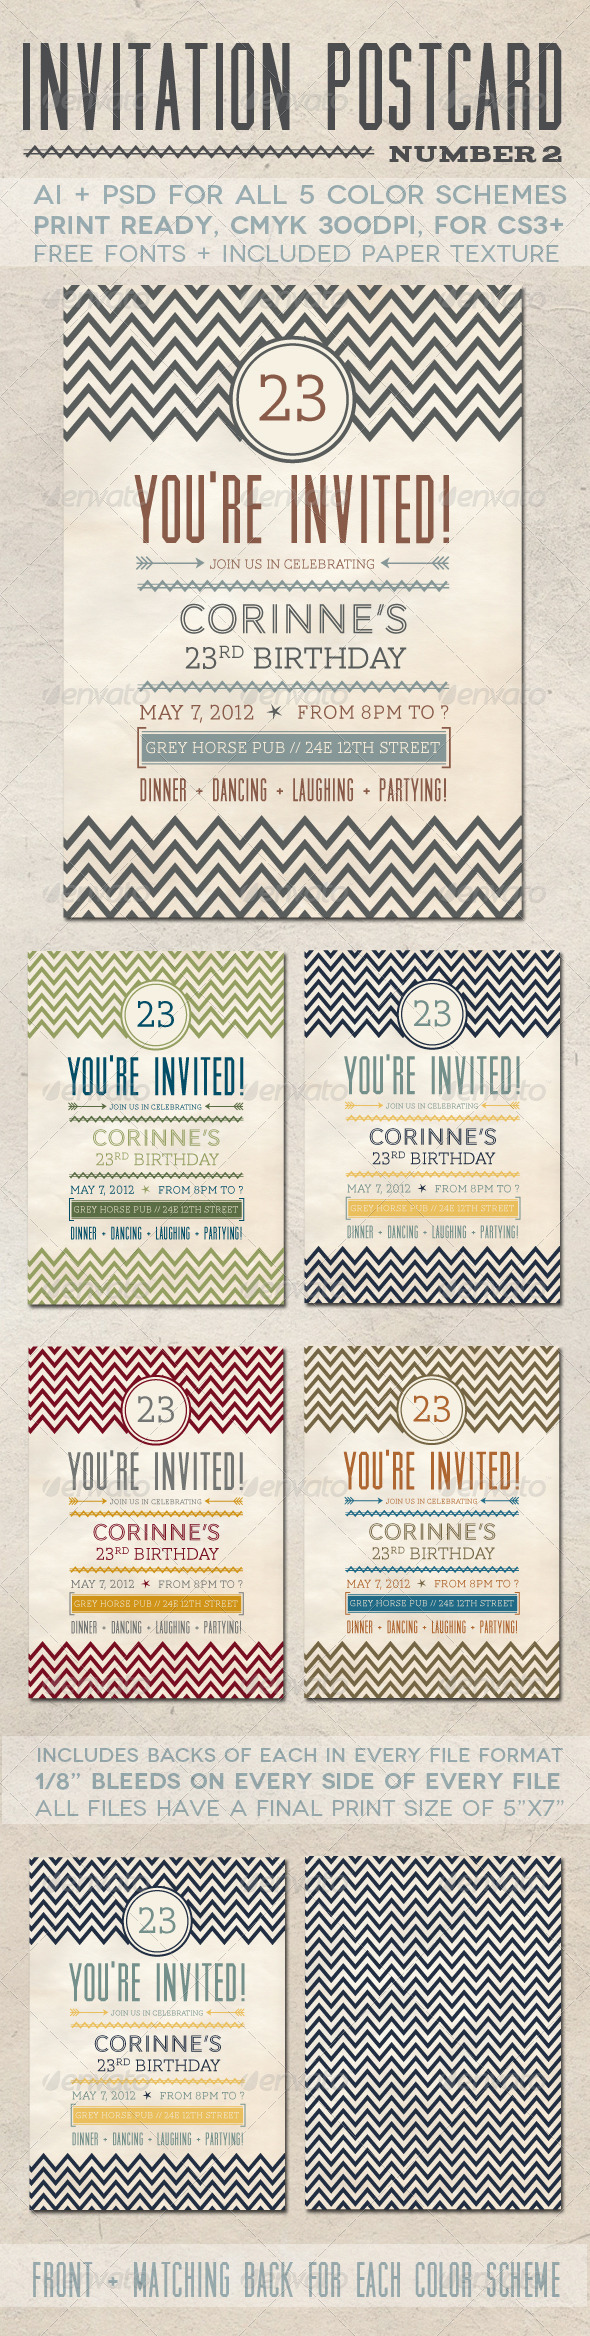 Invitation Postcard 2 - Invitations Cards & Invites